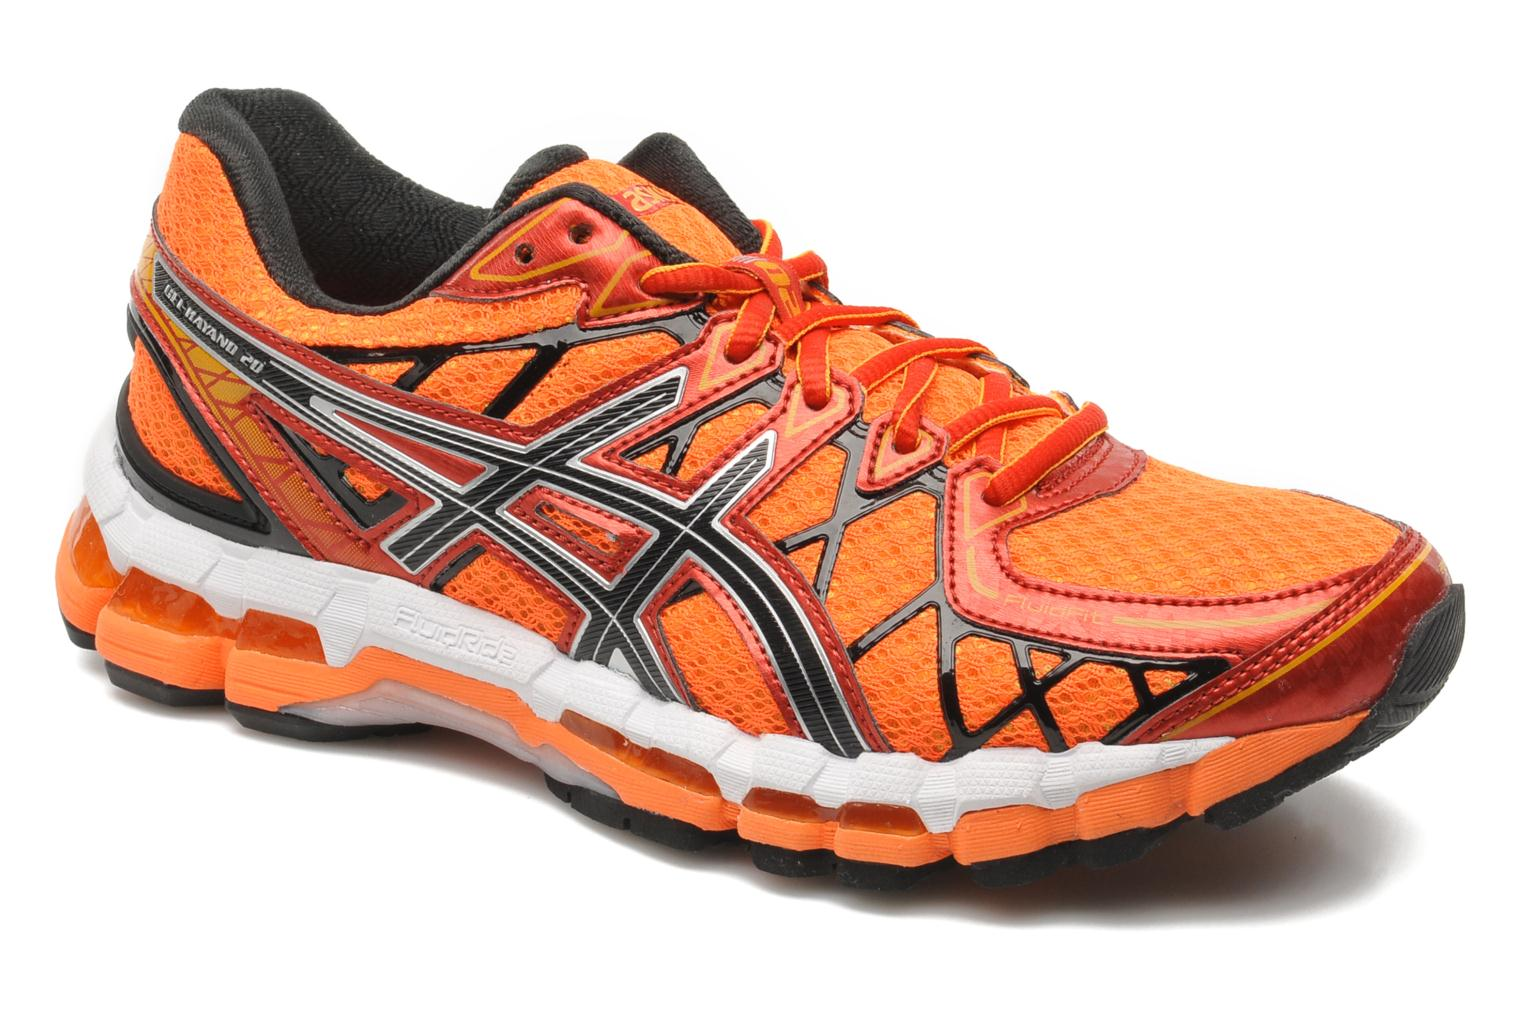 asics gel kayano 20 sport shoes in orange at. Black Bedroom Furniture Sets. Home Design Ideas